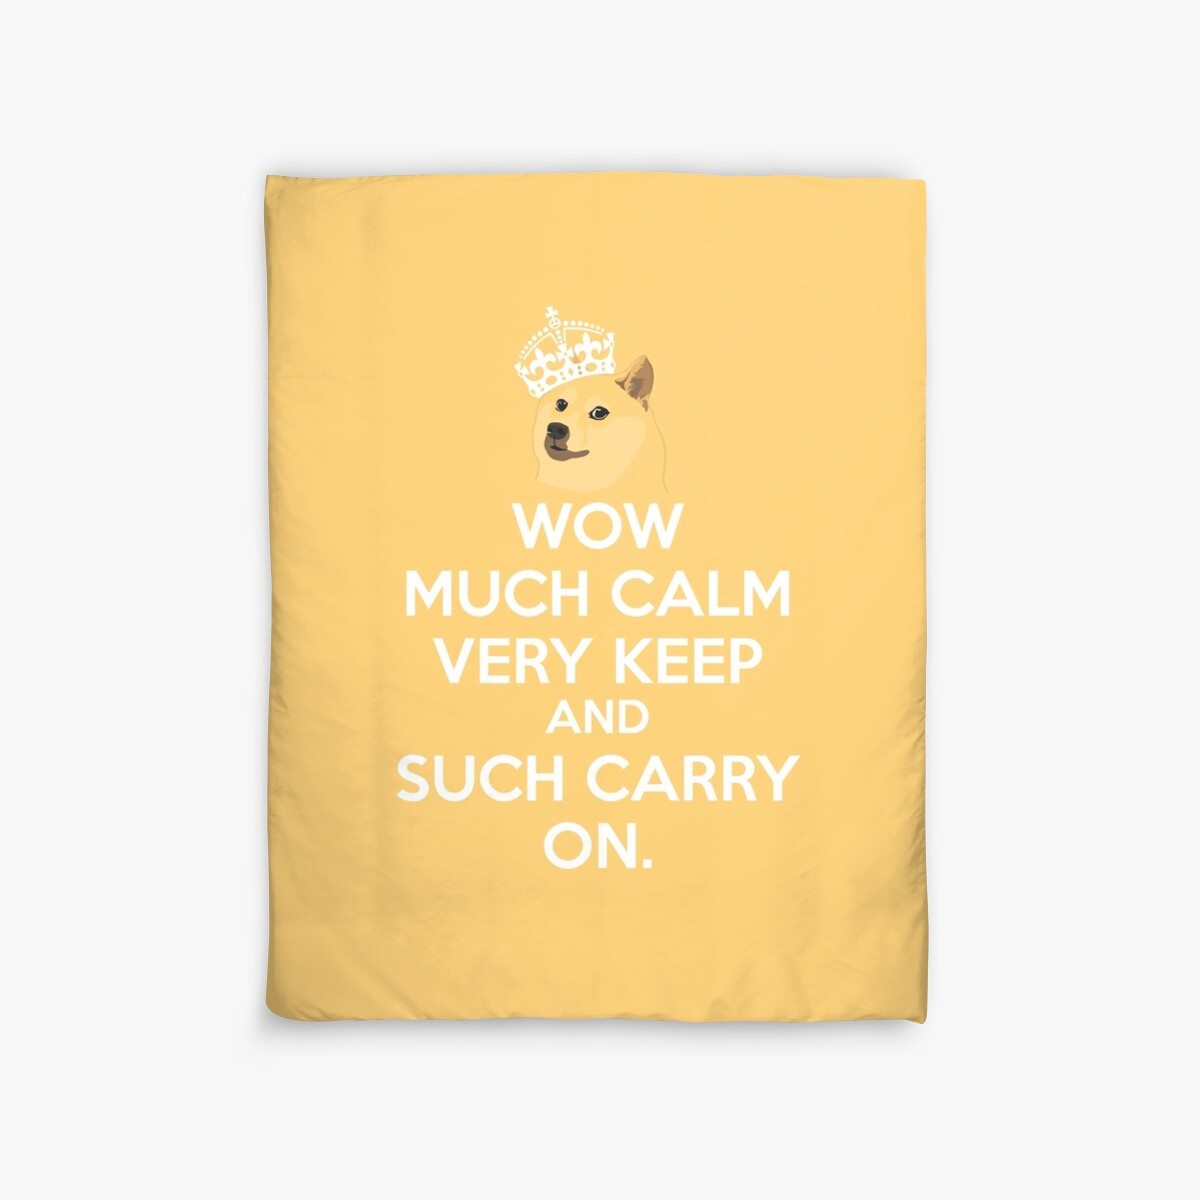 Doge meme keep calm - wow much calm\